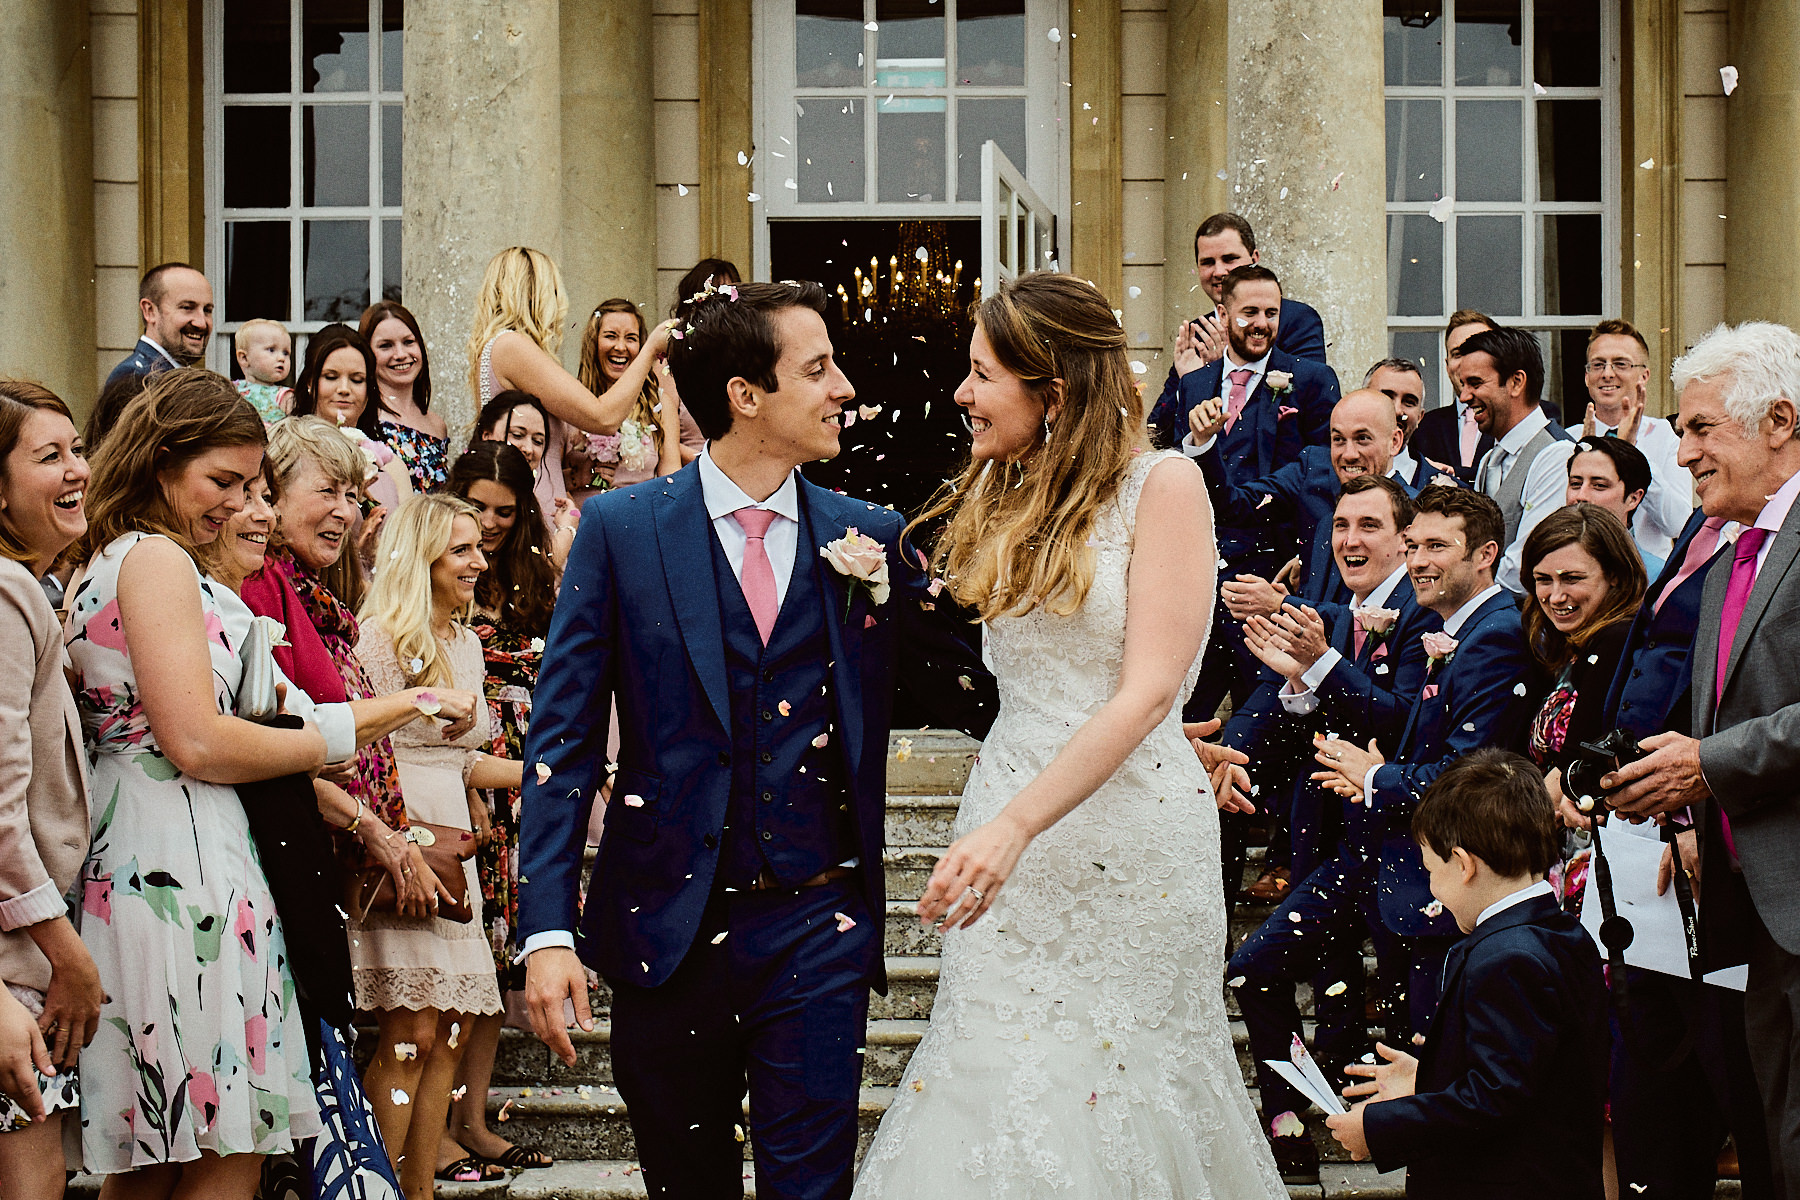 Bride and groom showered with confetti at their Buxted Park wedding in East Sussex